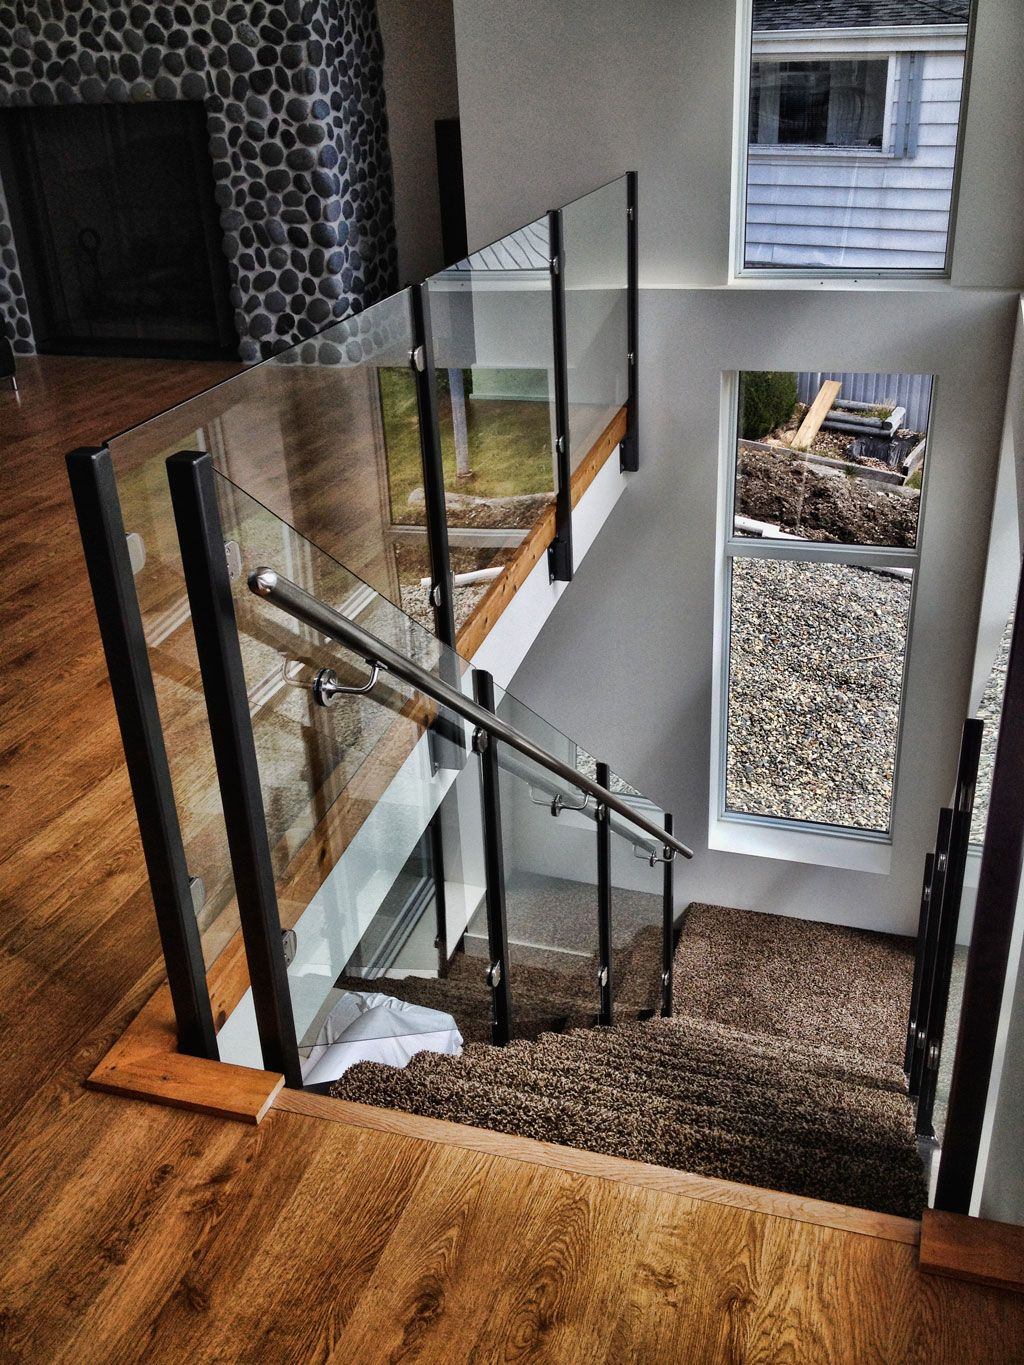 Best Picture Gallery Of Our Custom Glass Railings Interior Exterior Decking Stair Railing 400 x 300